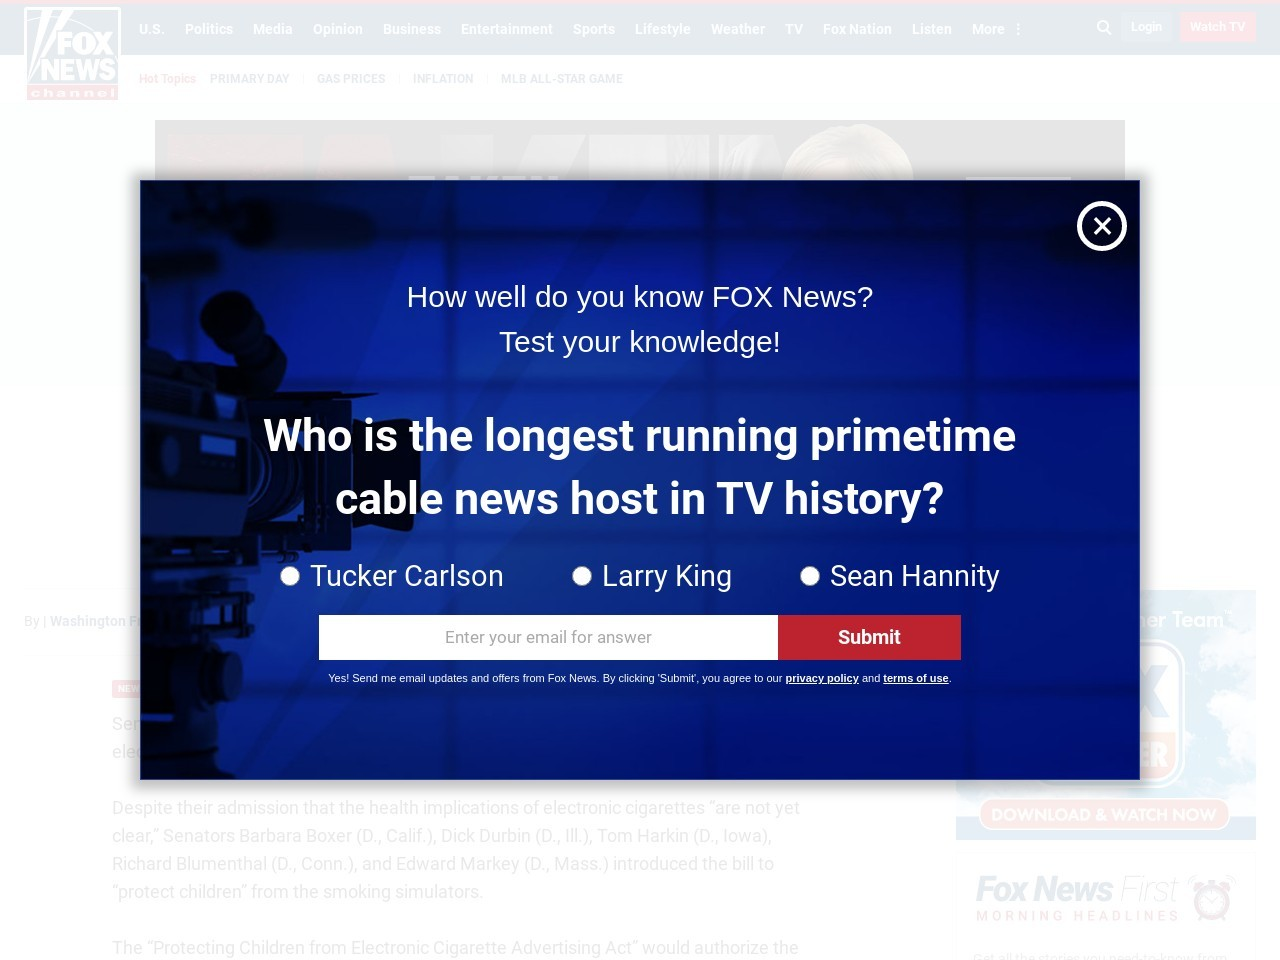 Democrats introduce bill to 'protect children' from electronic cigarettes